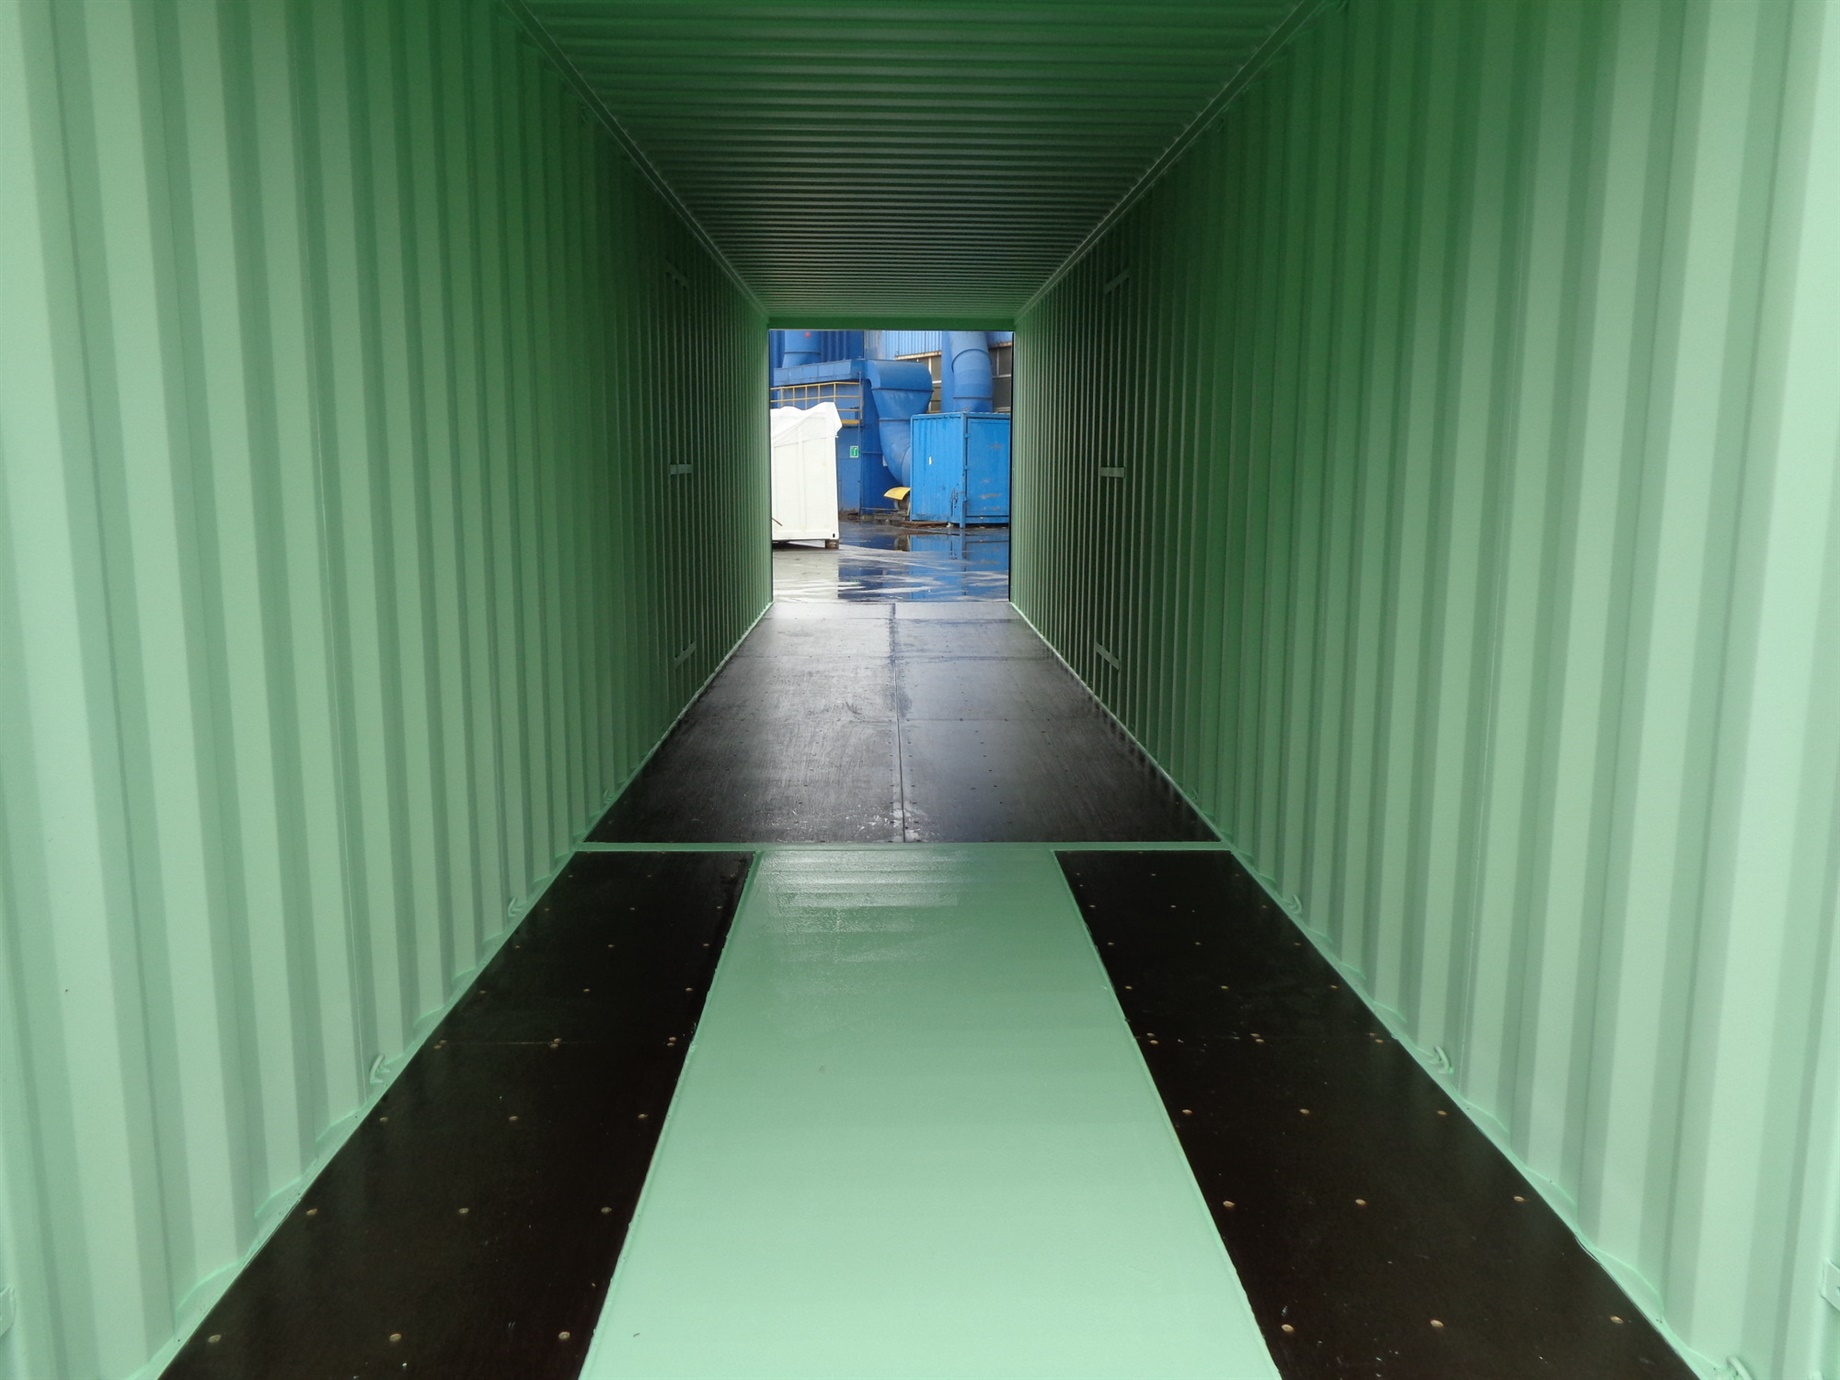 Container with doors on each end open 40